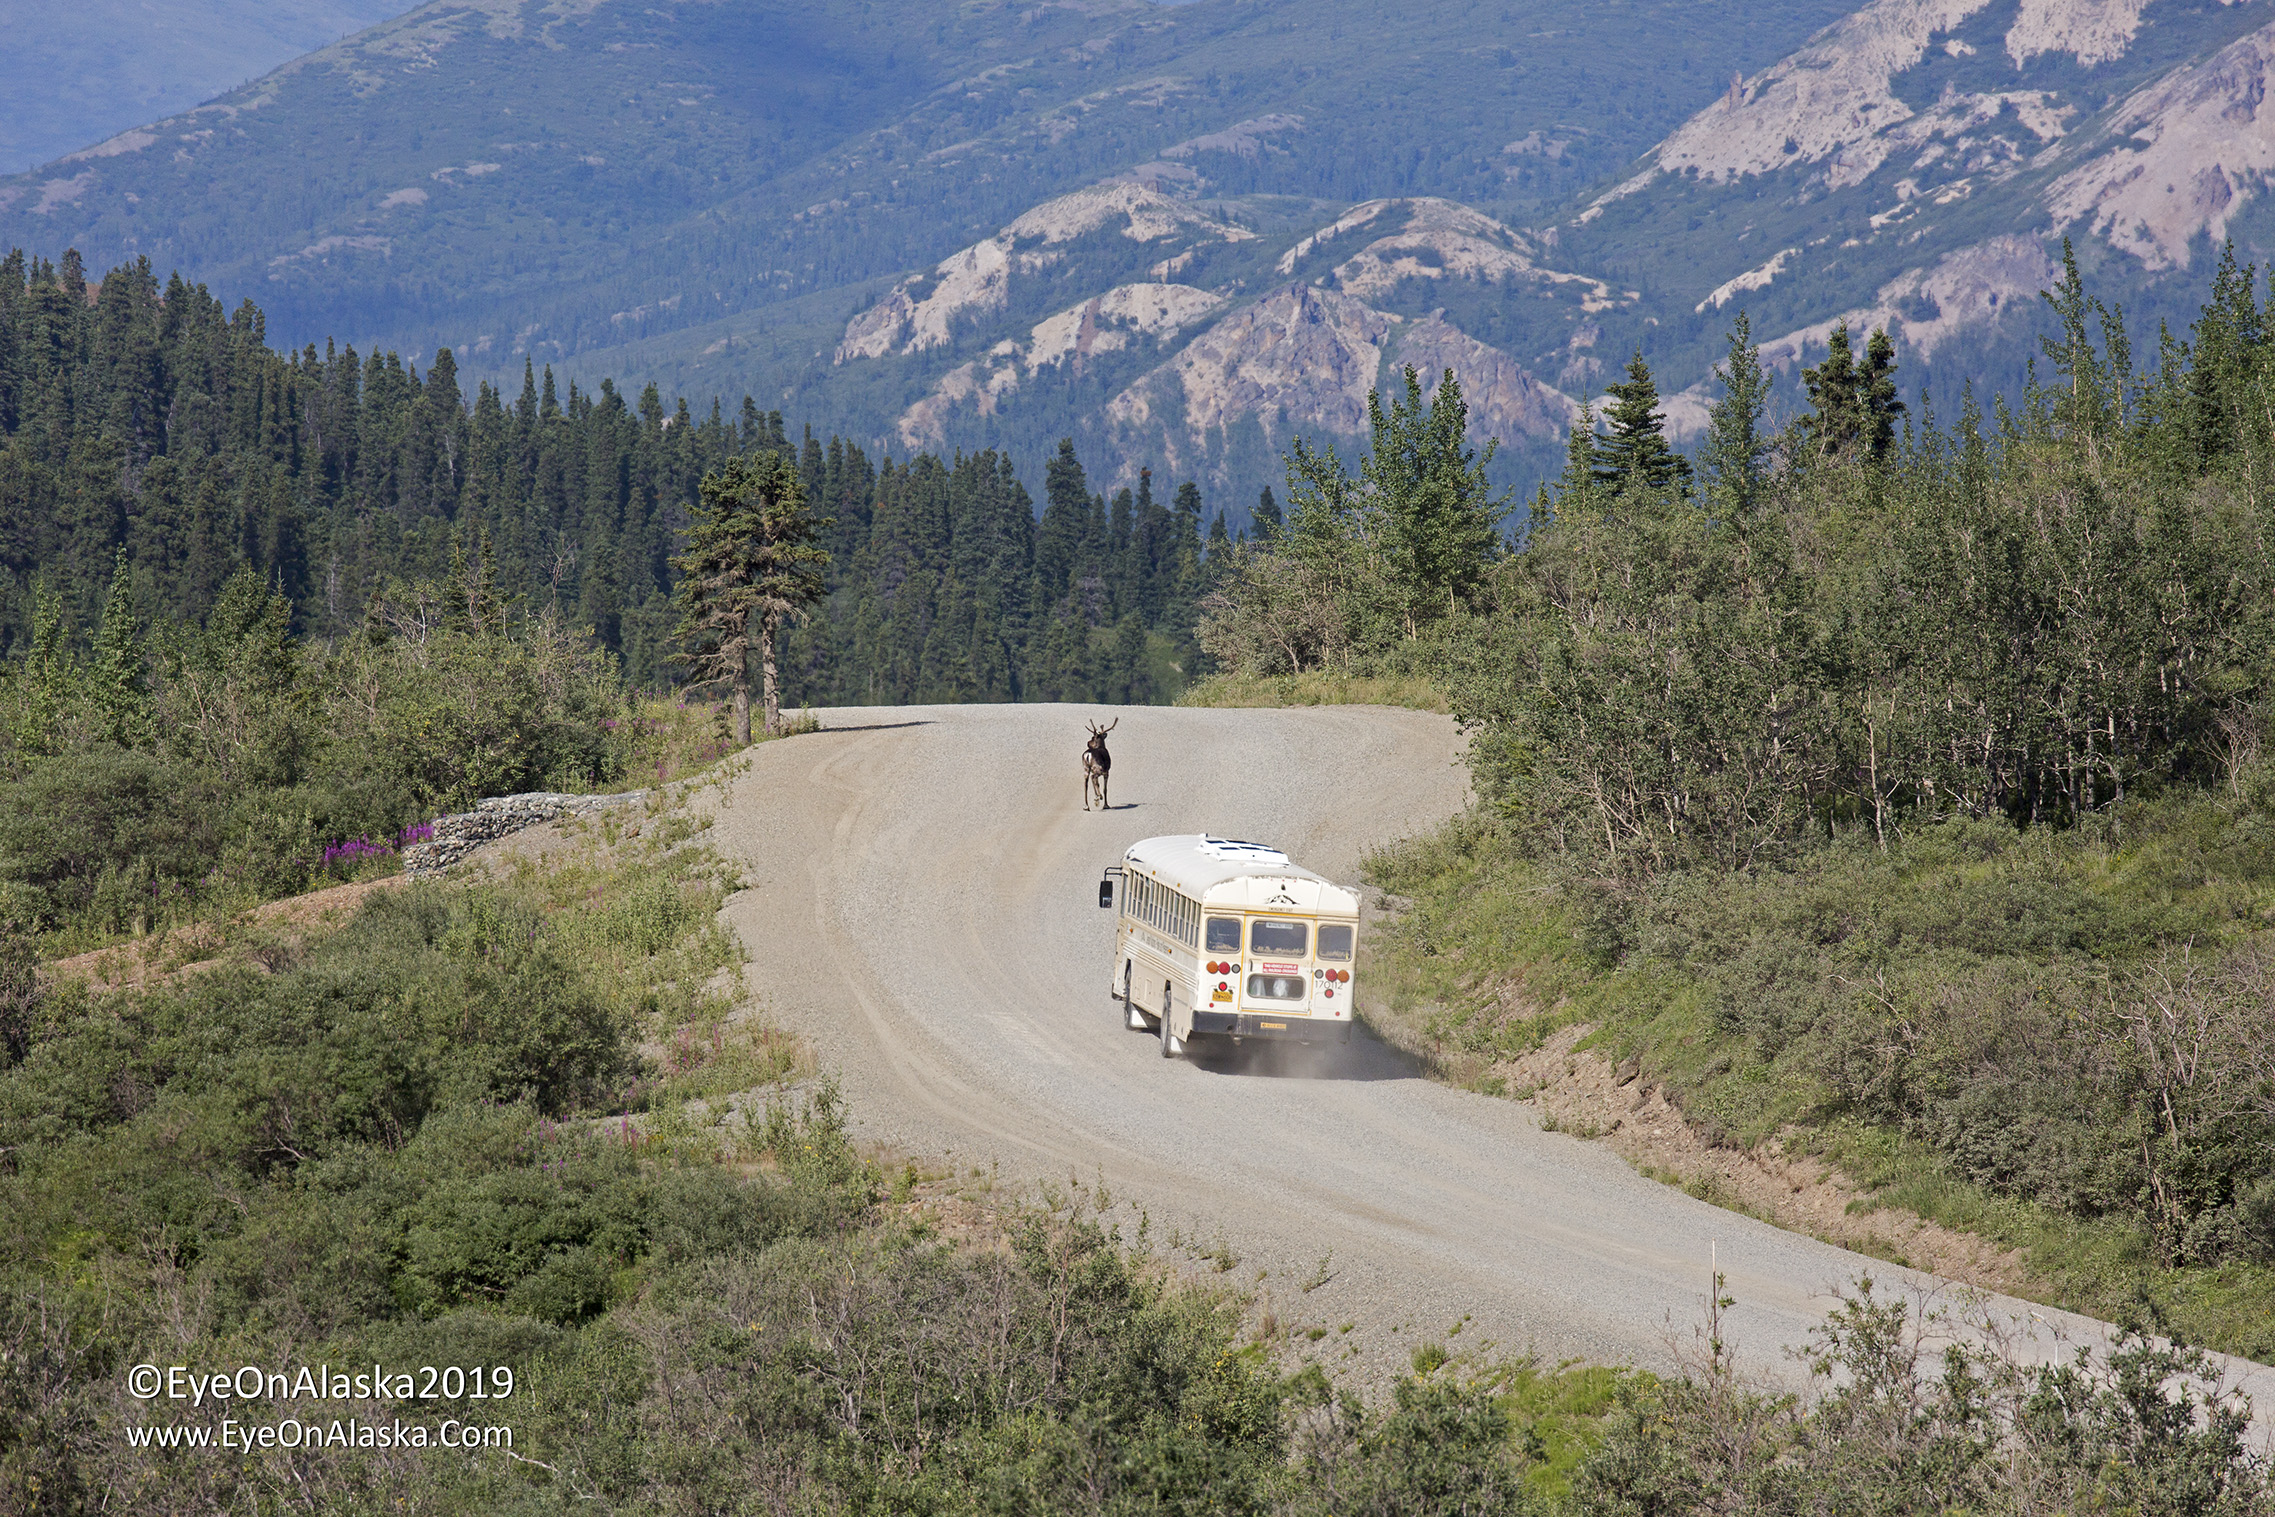 Our final ride of the trip from the top of Sable Pass back to the tek campground.  We watched this bus have to follow a very slow caribou for almost half a mile.  Even though I'm sure that this late in the day the passengers just wanted to get back to the park entrance, the buses aren't allowed to alter the animals behavior.